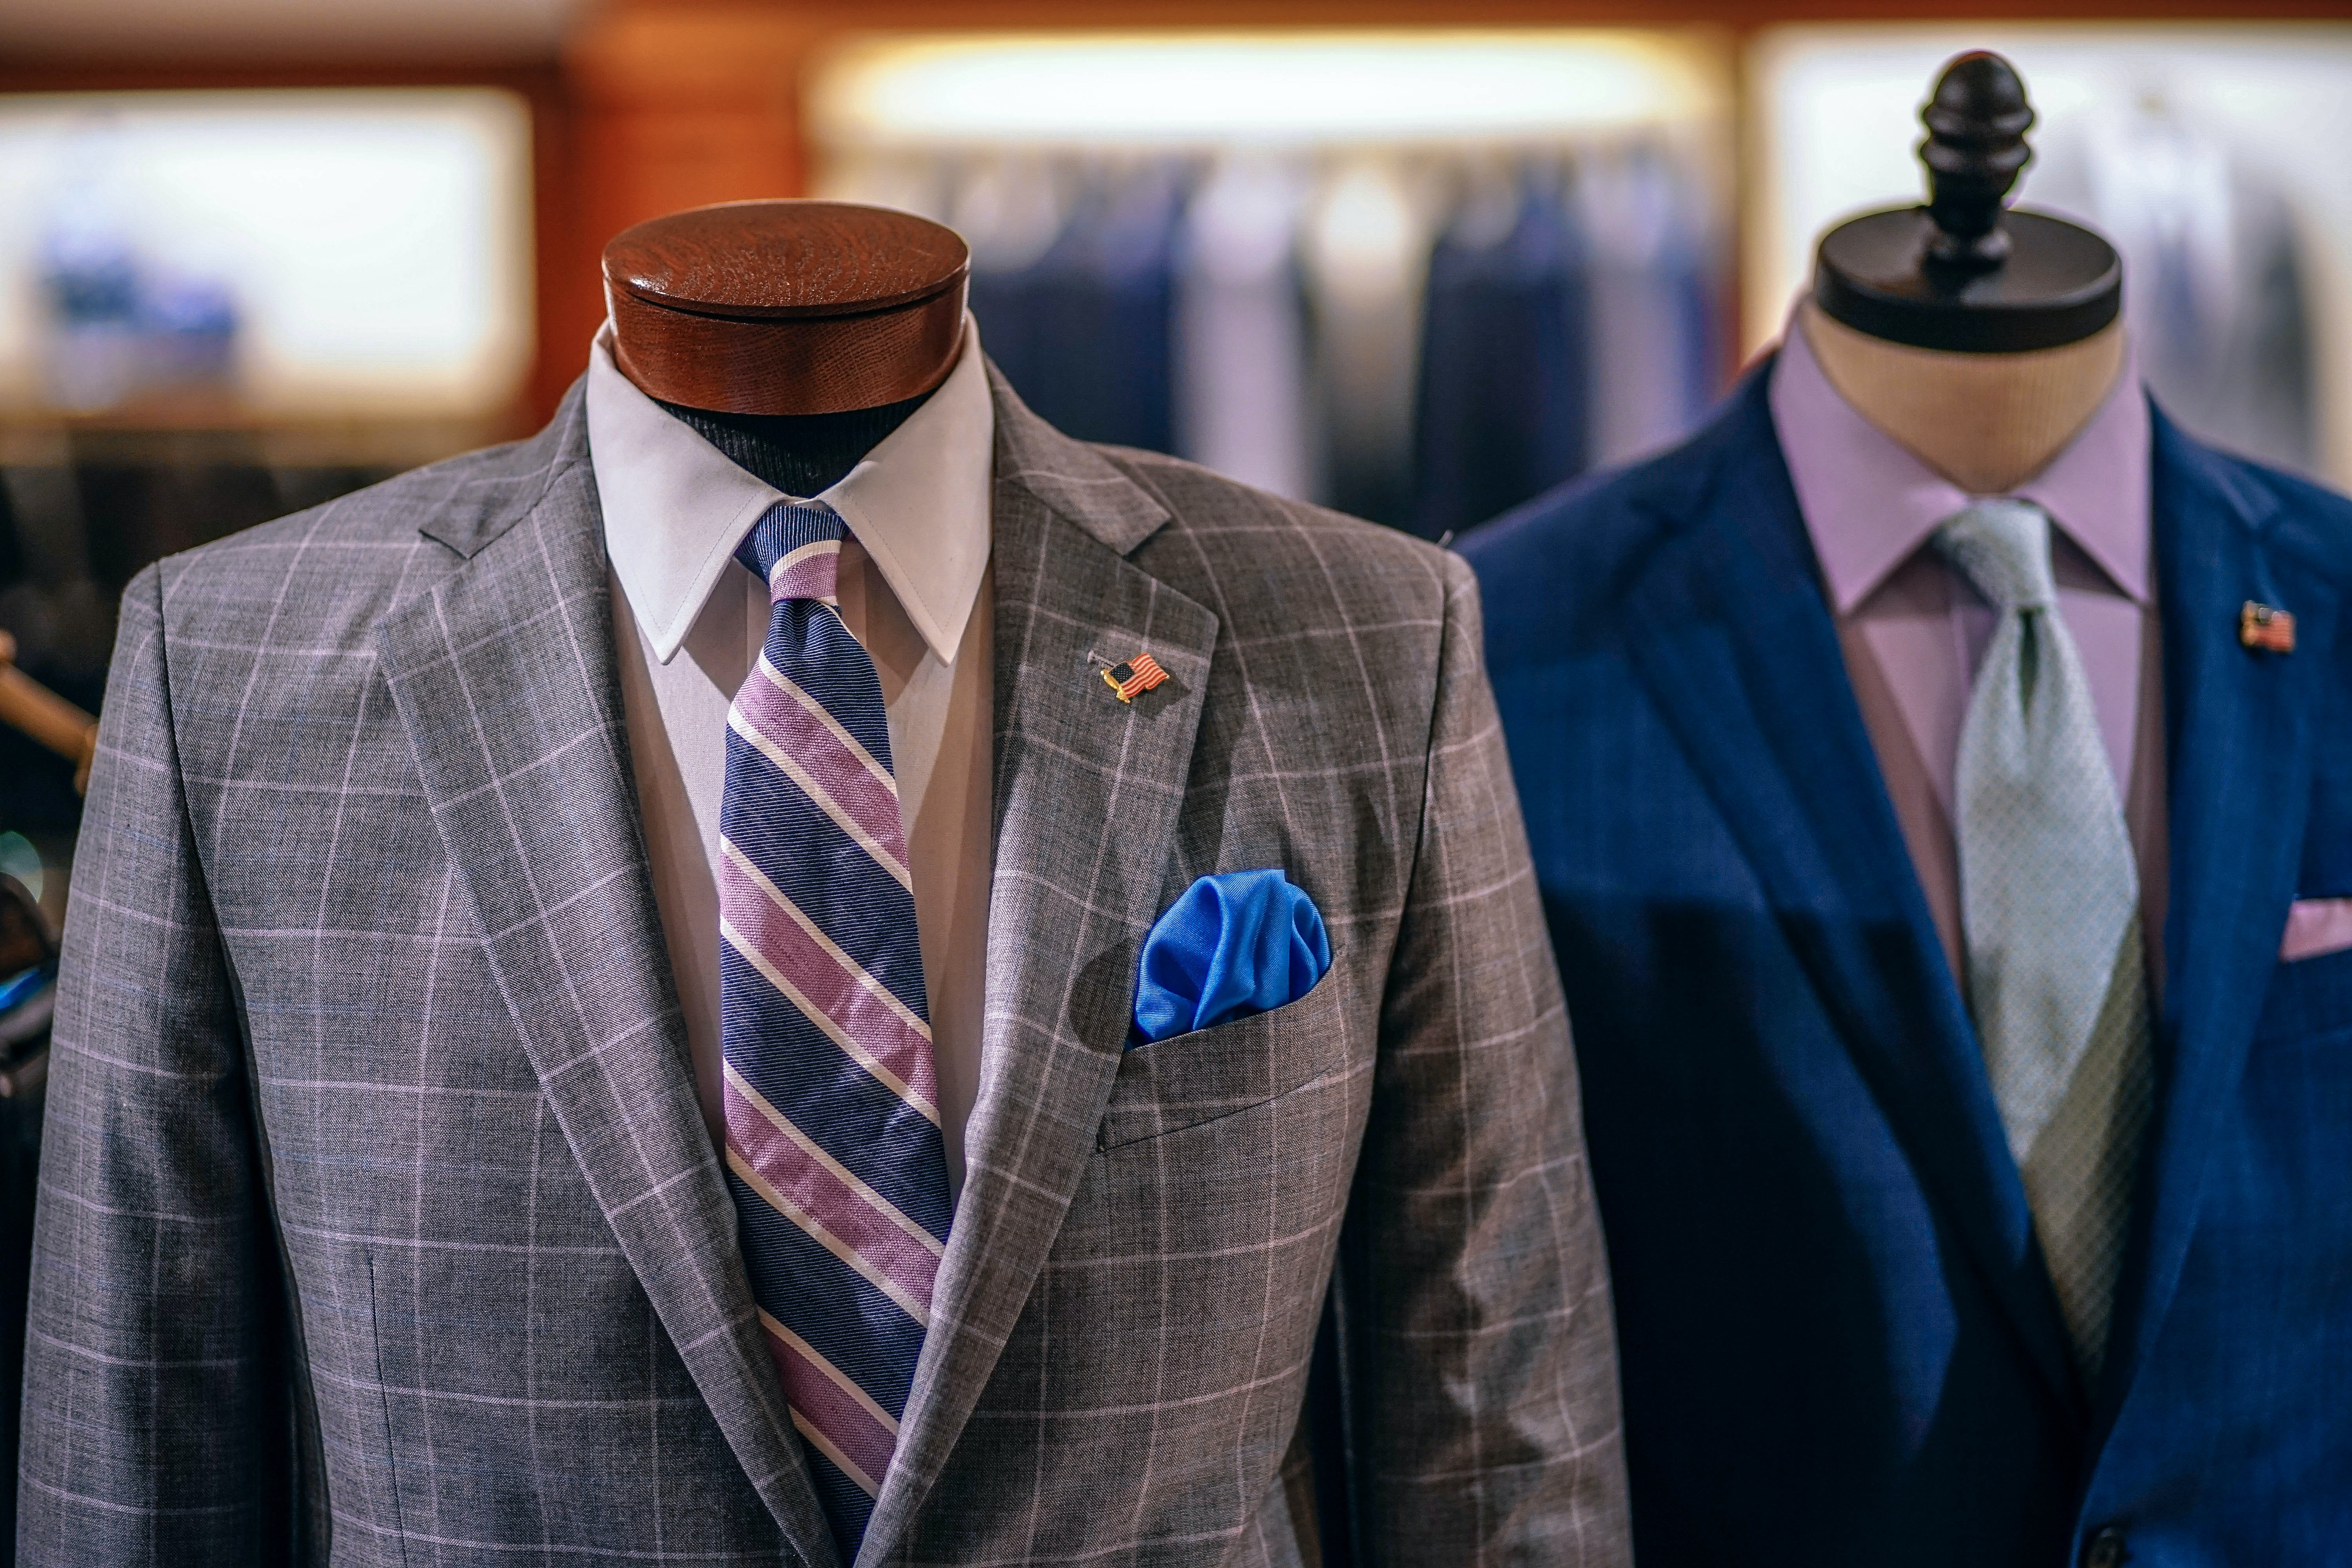 Suits on display at a clothing store.